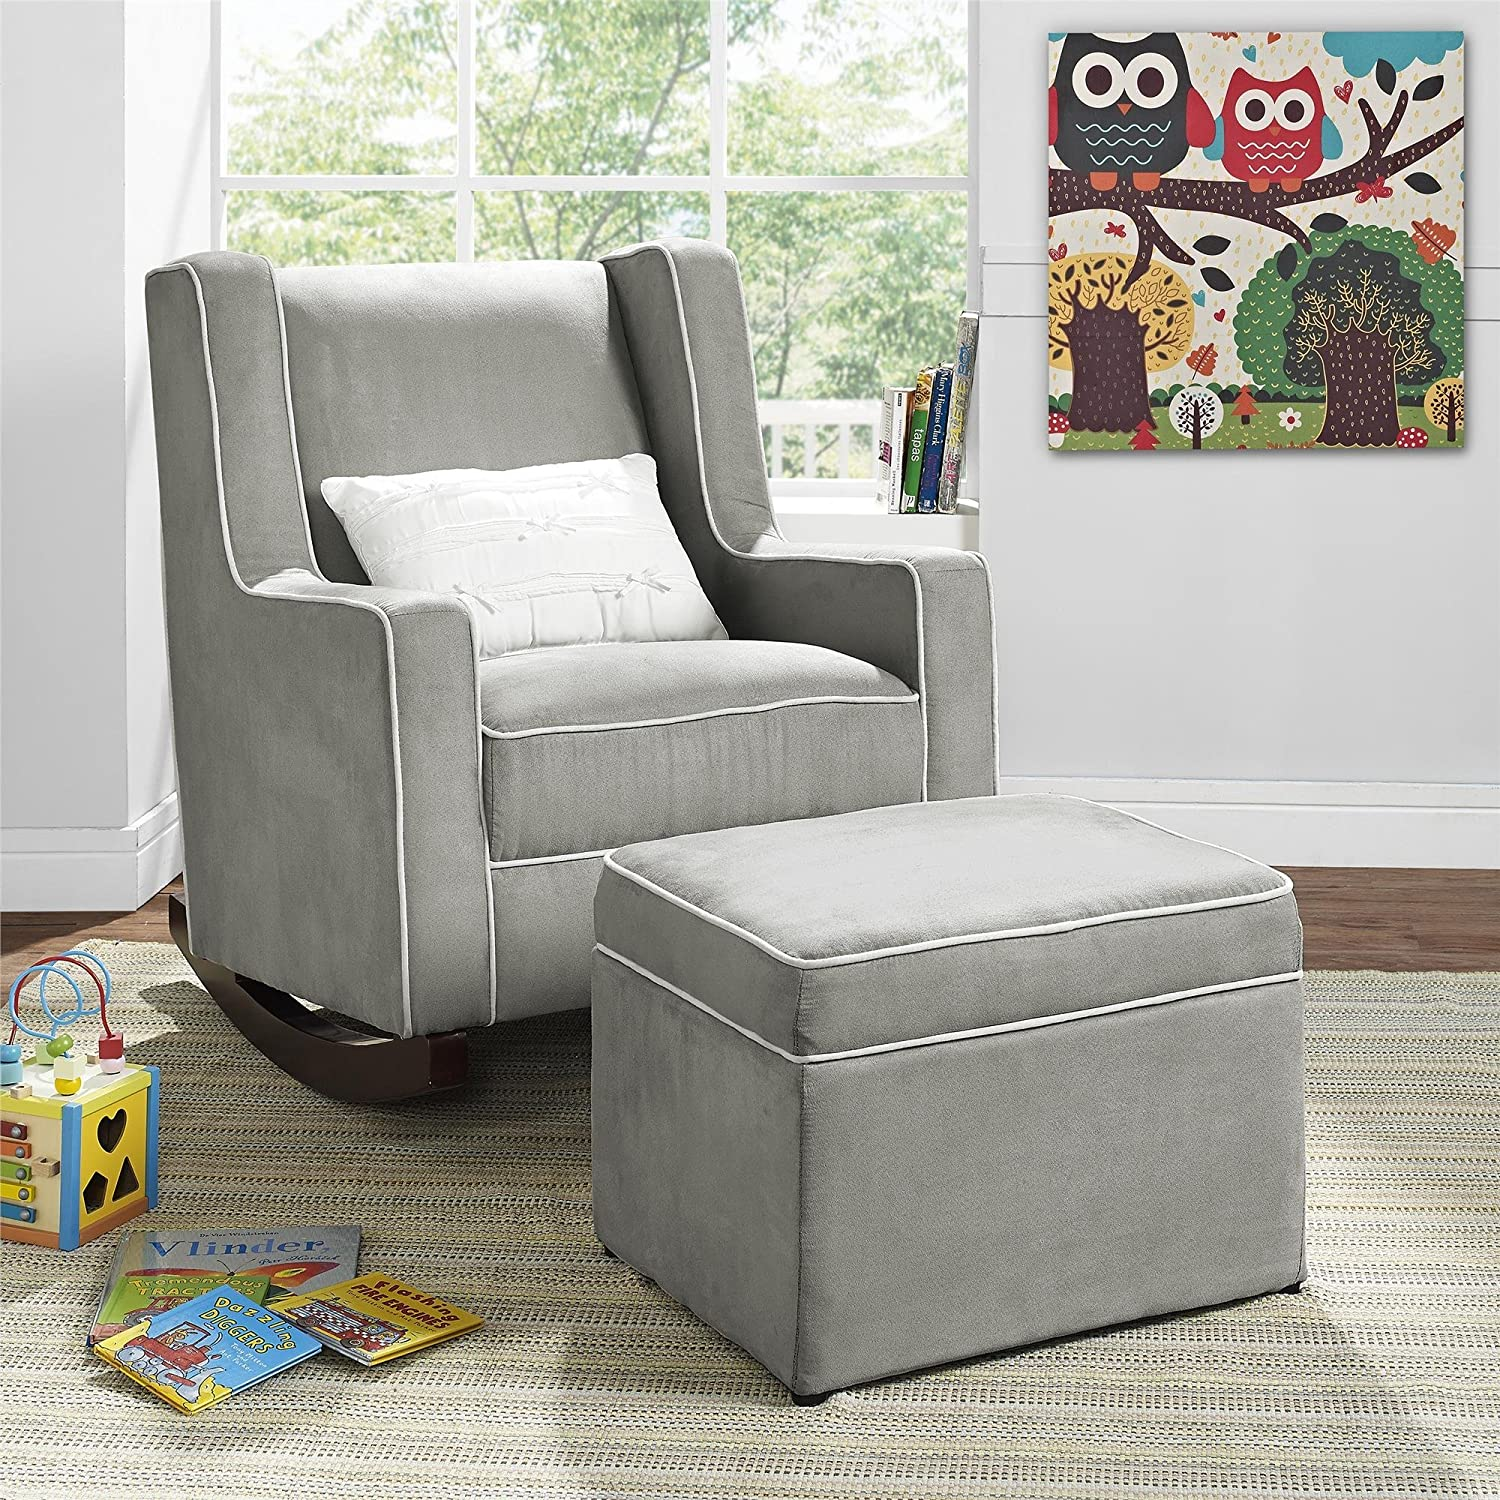 Nursery chair and ottoman - Amazon Com Baby Relax The Abby Nursery Storage Ottoman For Baby Gliders Grey Kitchen Dining